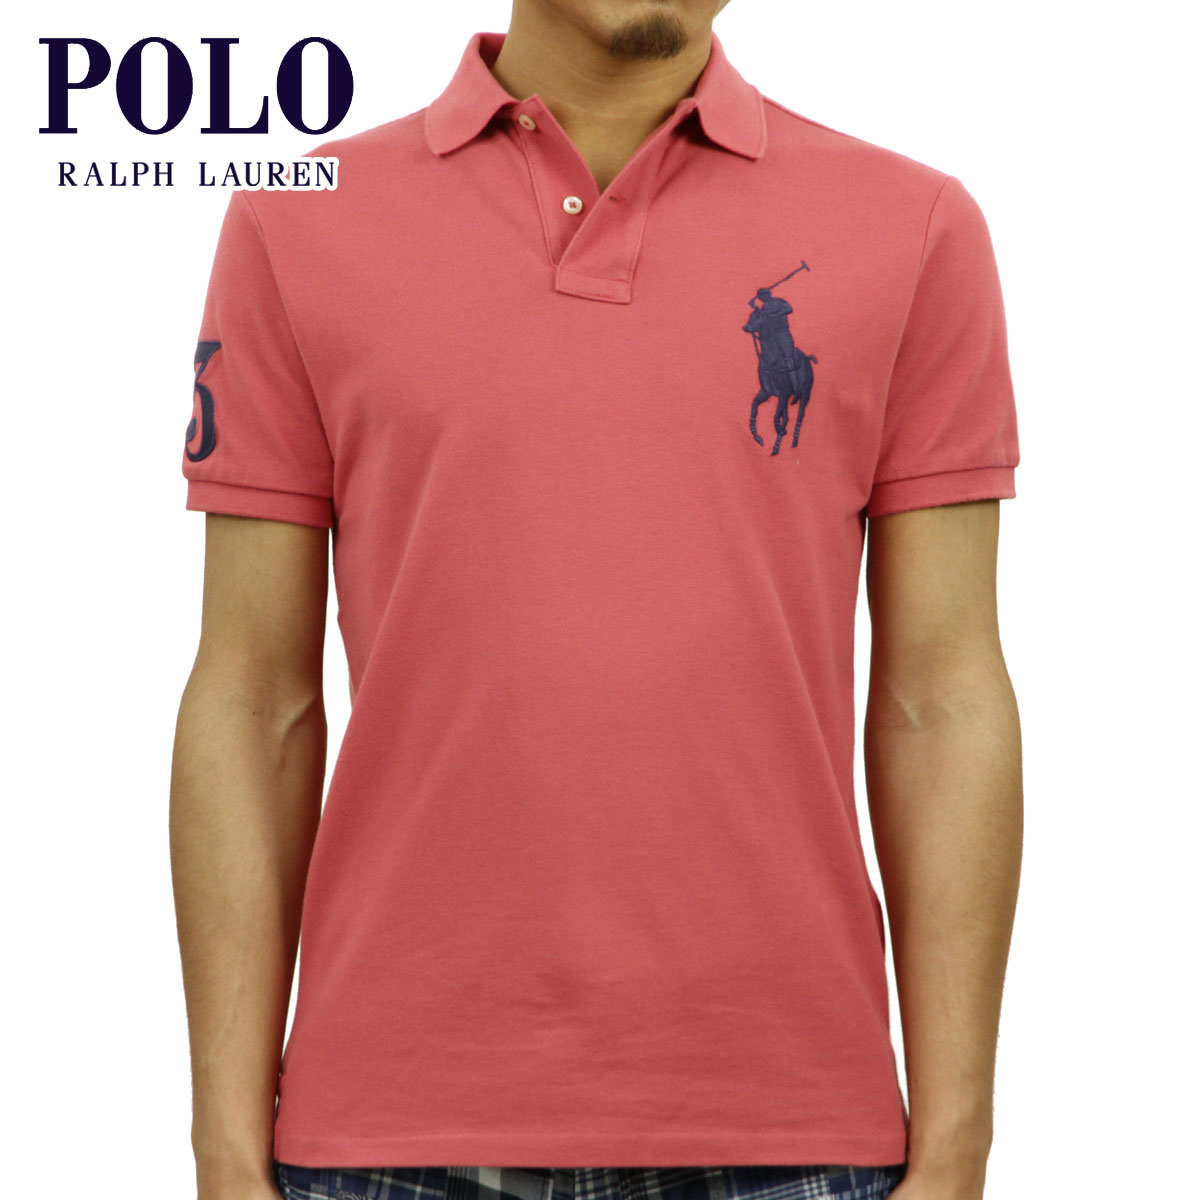 a90c4b96 Polo Ralph Lauren POLO RALPH LAUREN regular article men custom slim fitting  big pony short sleeves ...